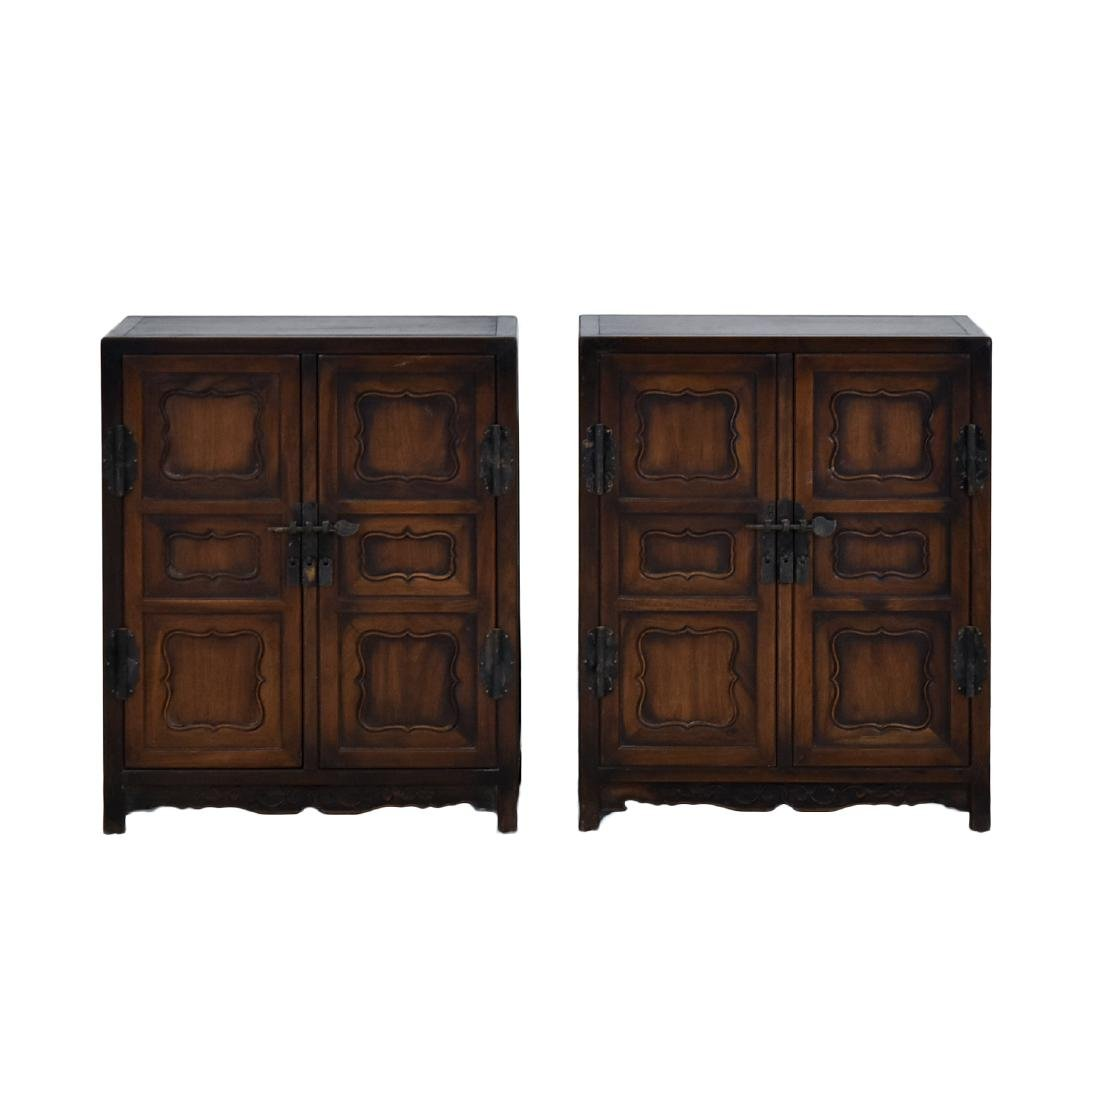 18/19TH PAIR OF CHINESE HUANGHUALI WAISTLESS CABINETS